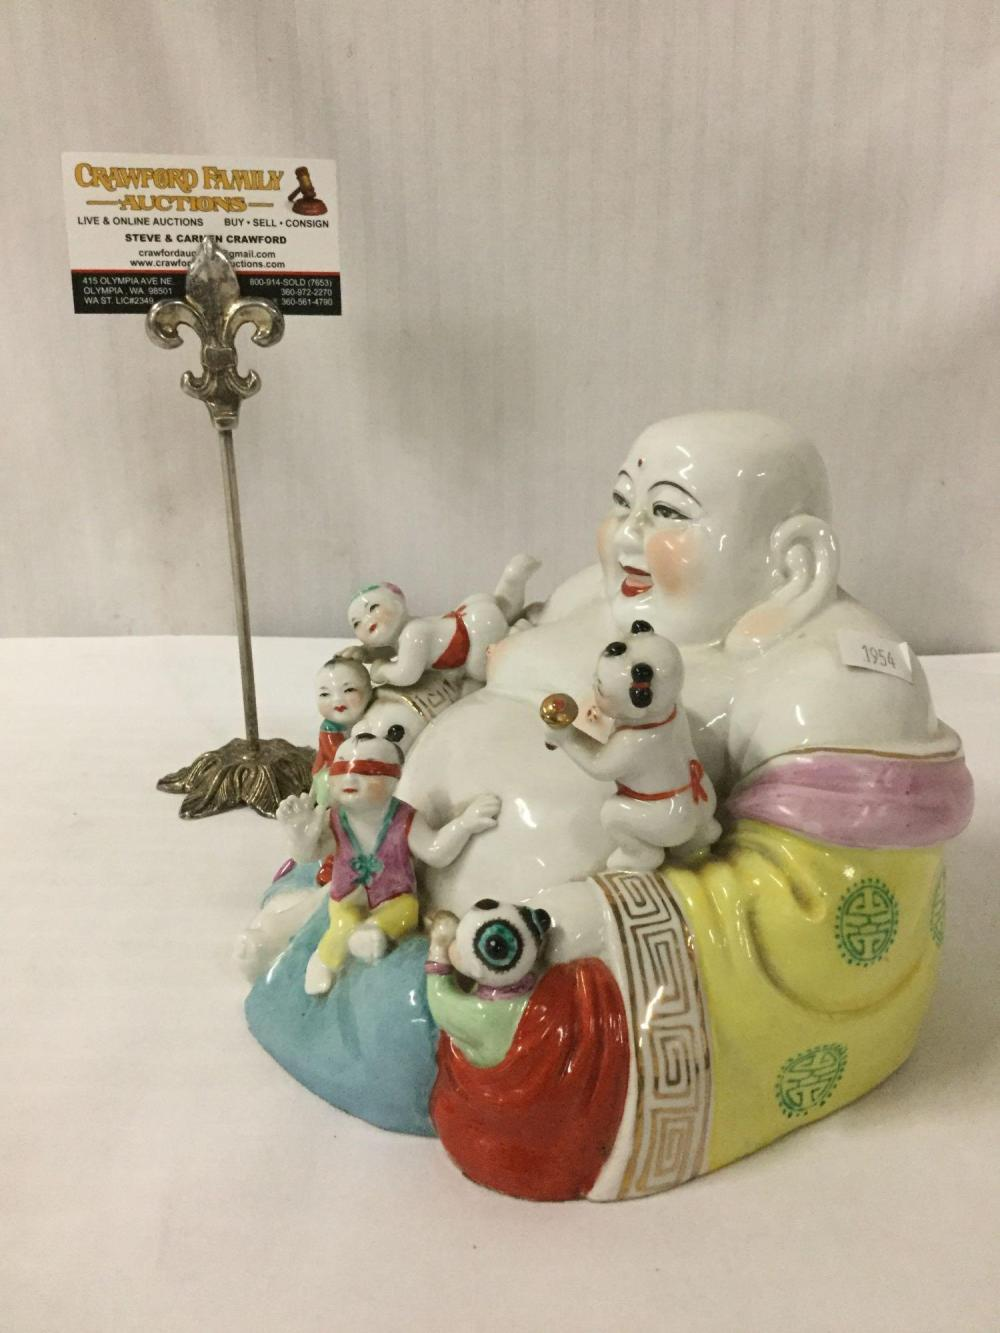 Lot 396: Porcelain Buddha statue with painted accents , Buddha story teller